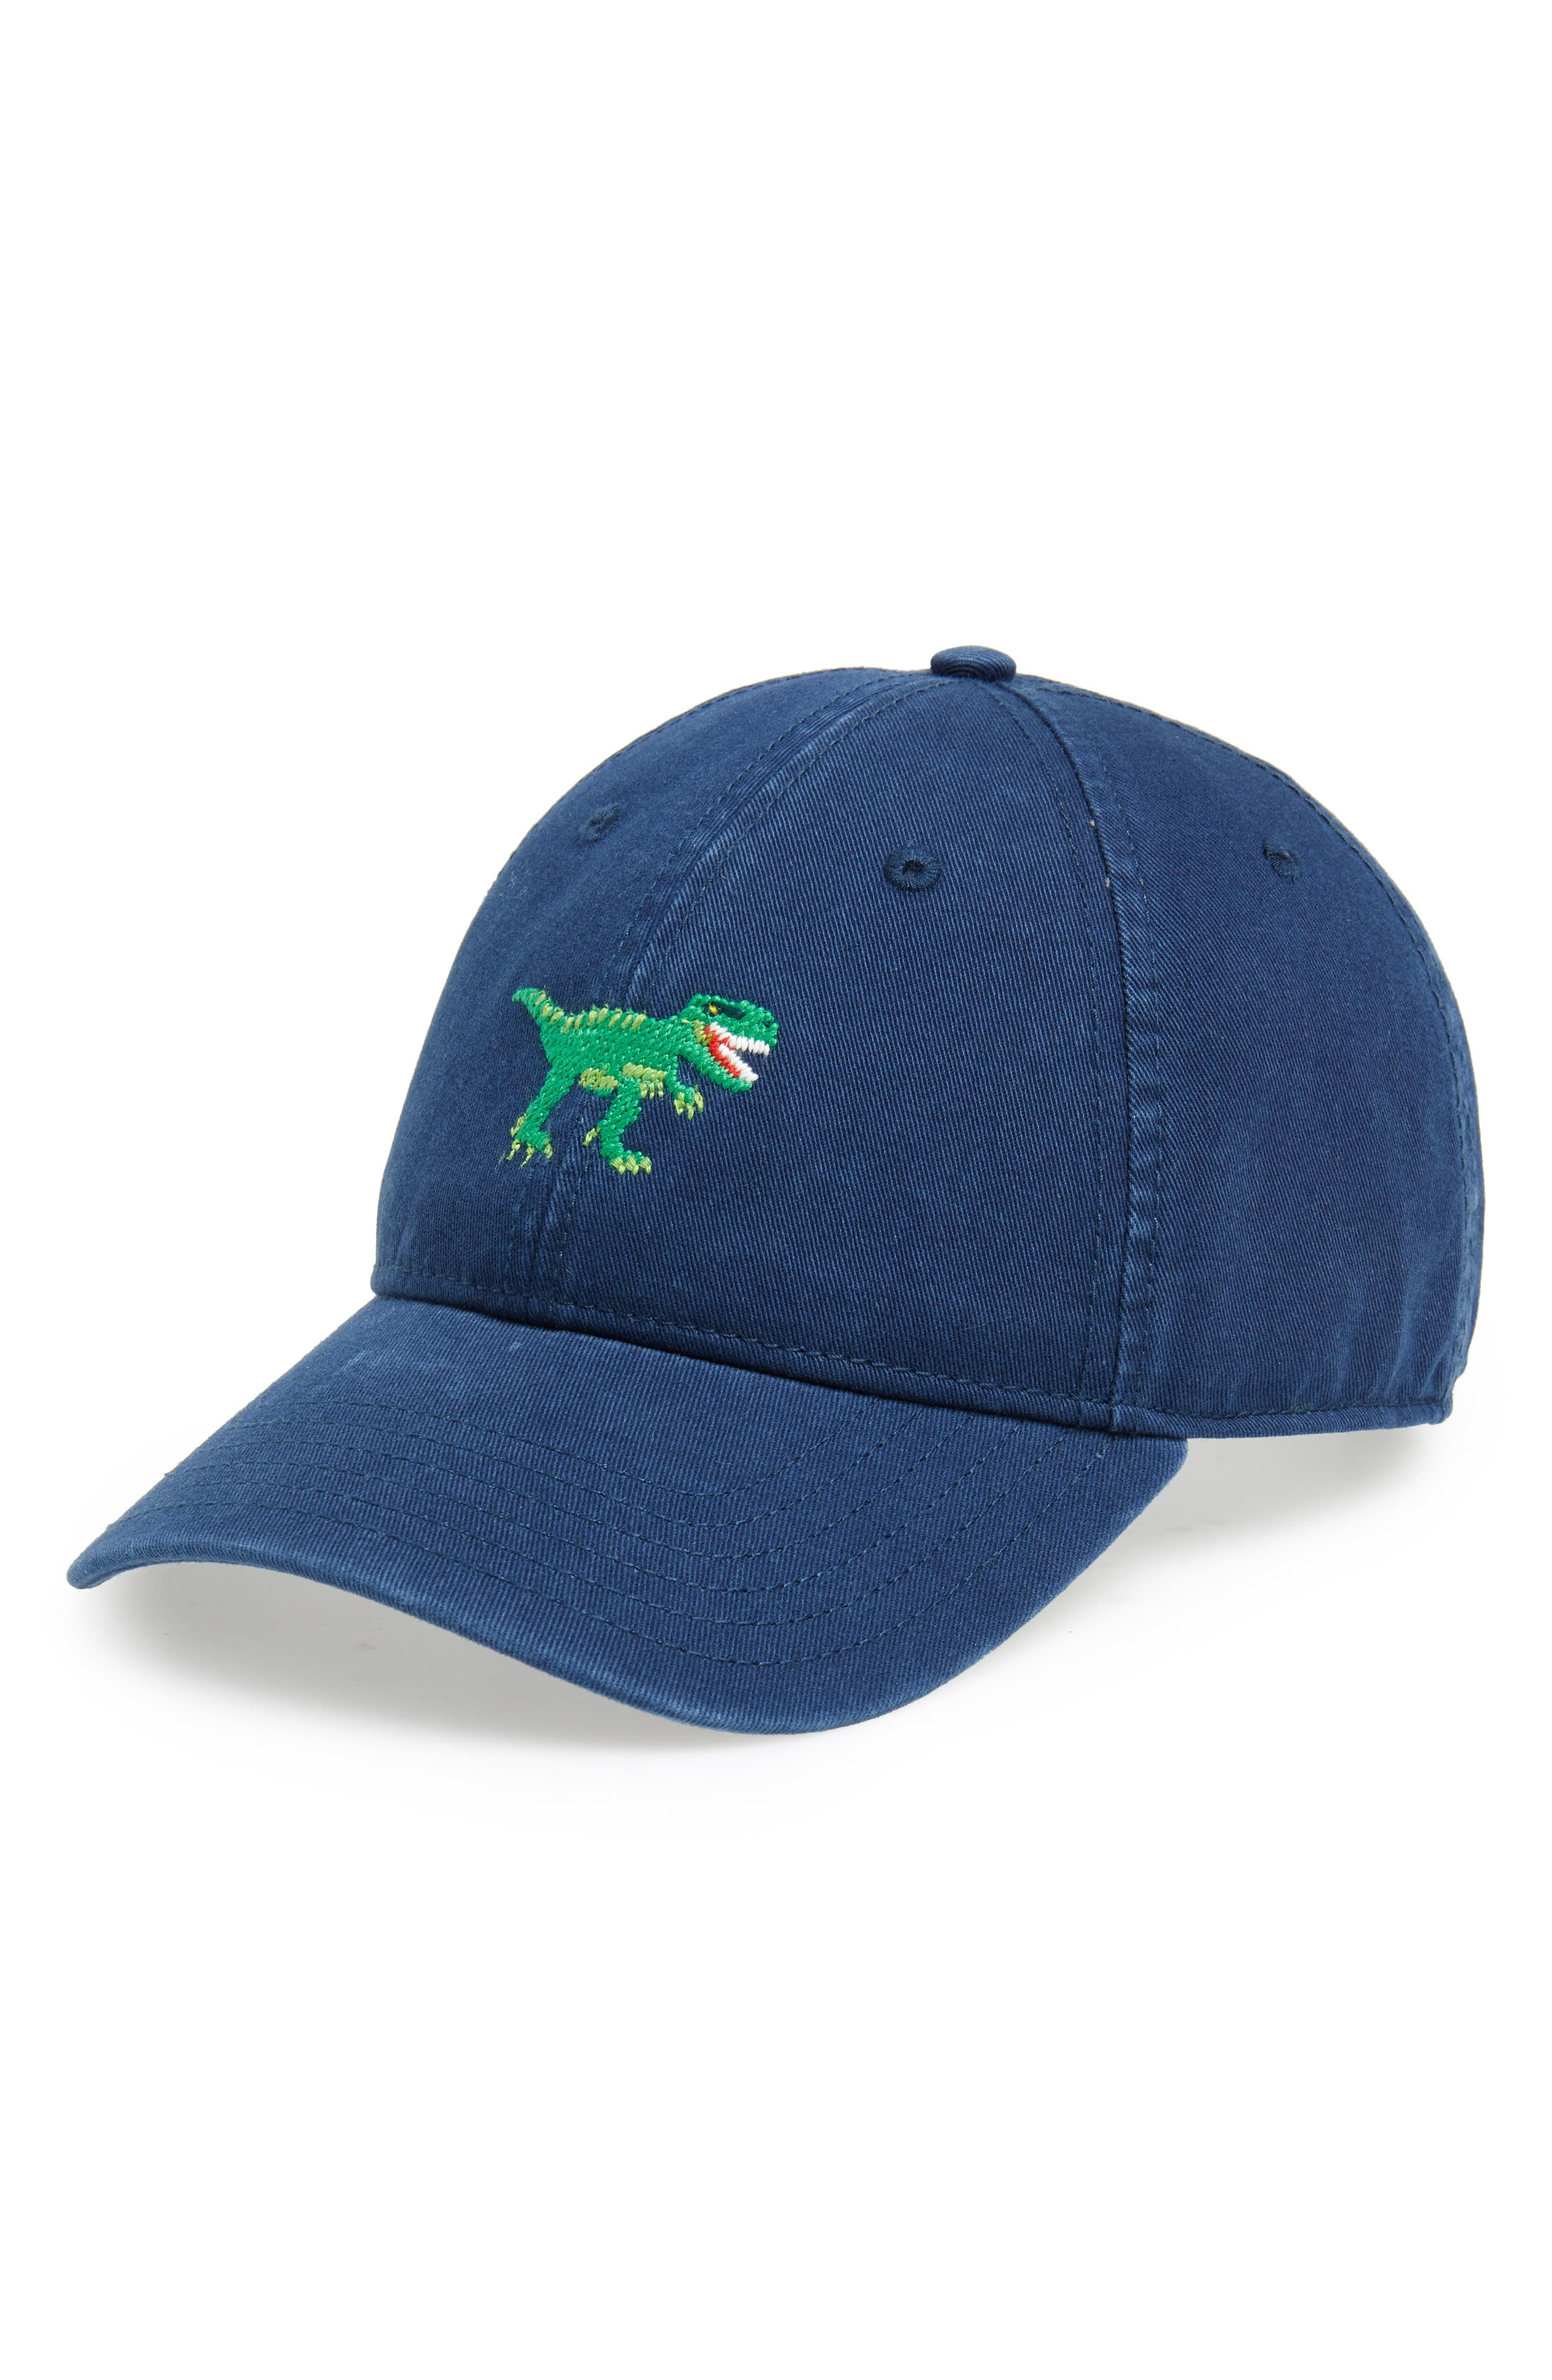 T-Rex Baseball Cap,                         Main,                         color, 400